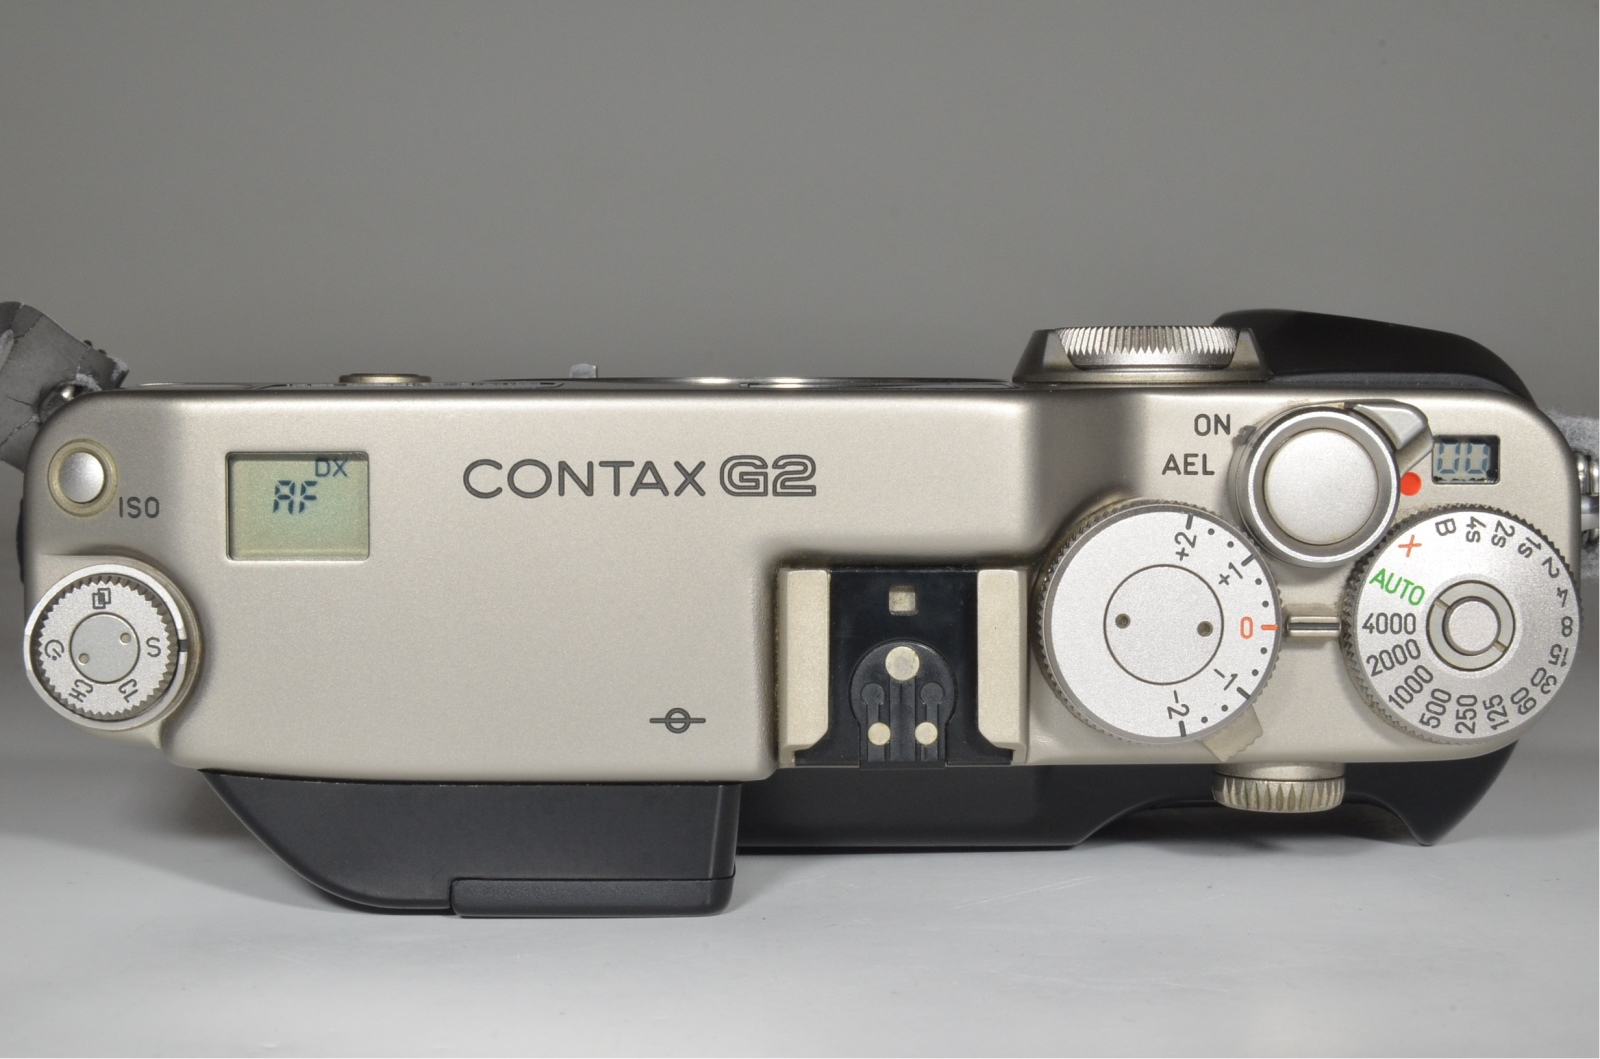 contax g2 data back, planar 45mm f2, biogon 28mm f2.8, sonnar 90mm f2.8, tla200